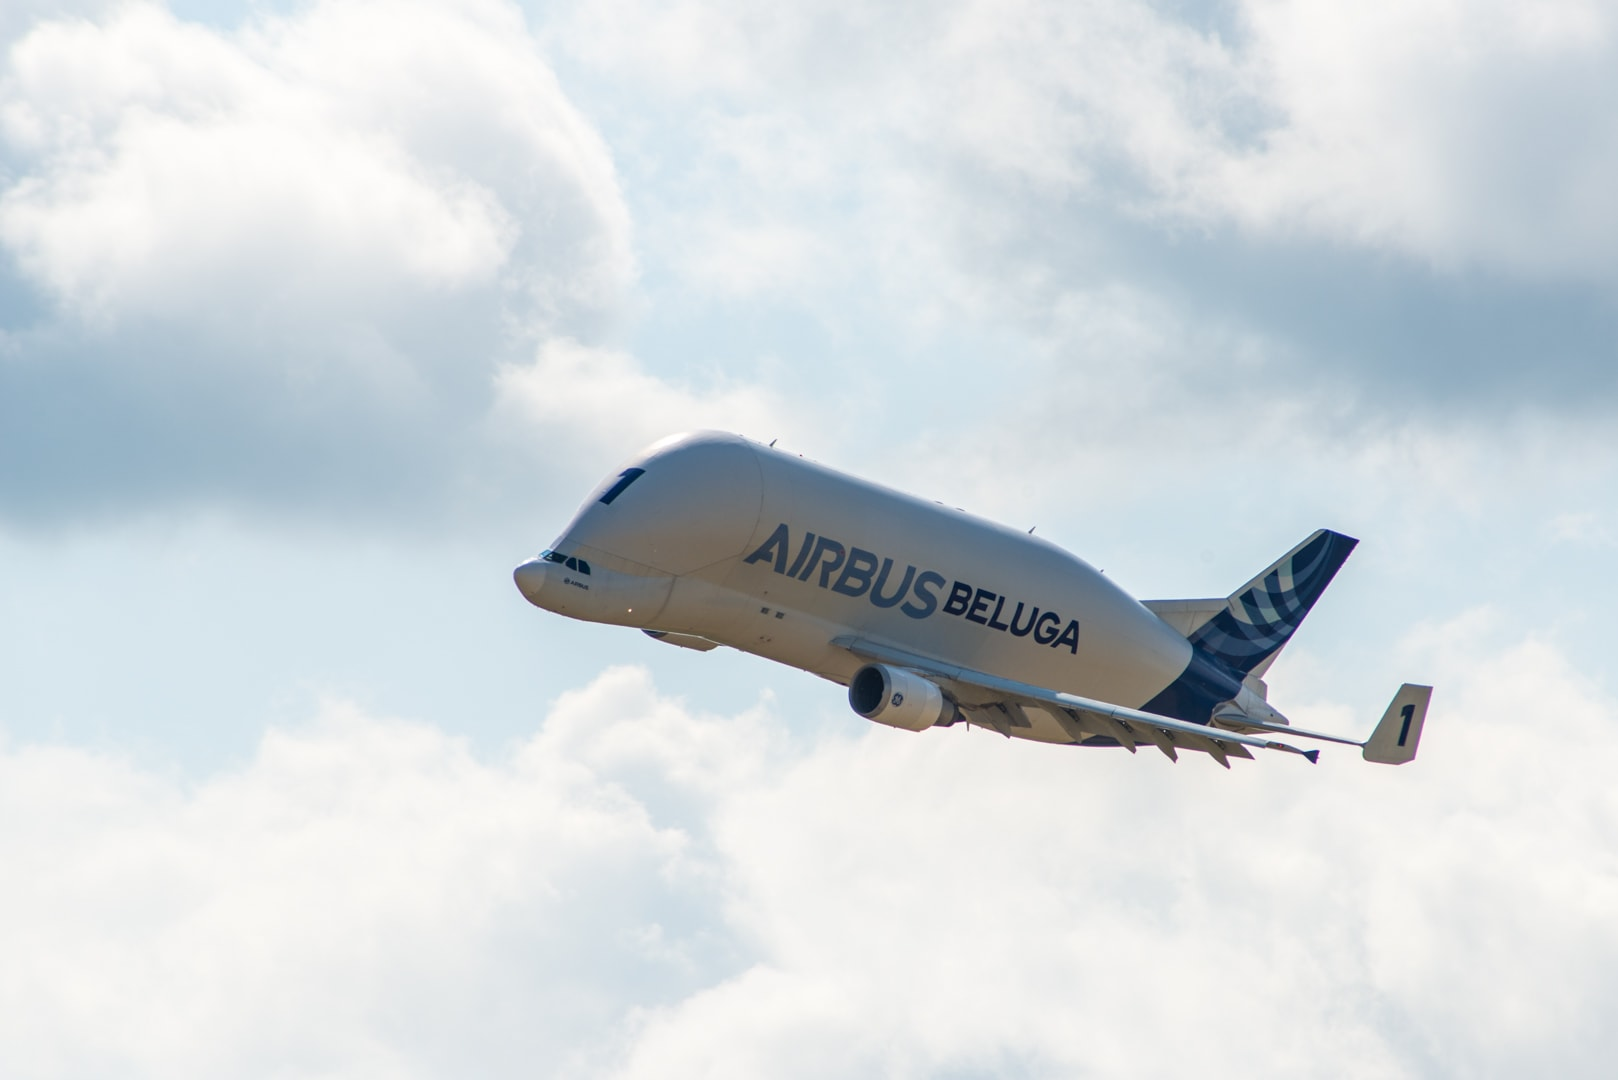 Photo d'avion le Beluga de Airbus lors du meeting aérien sur Toulouse ( Lherm)